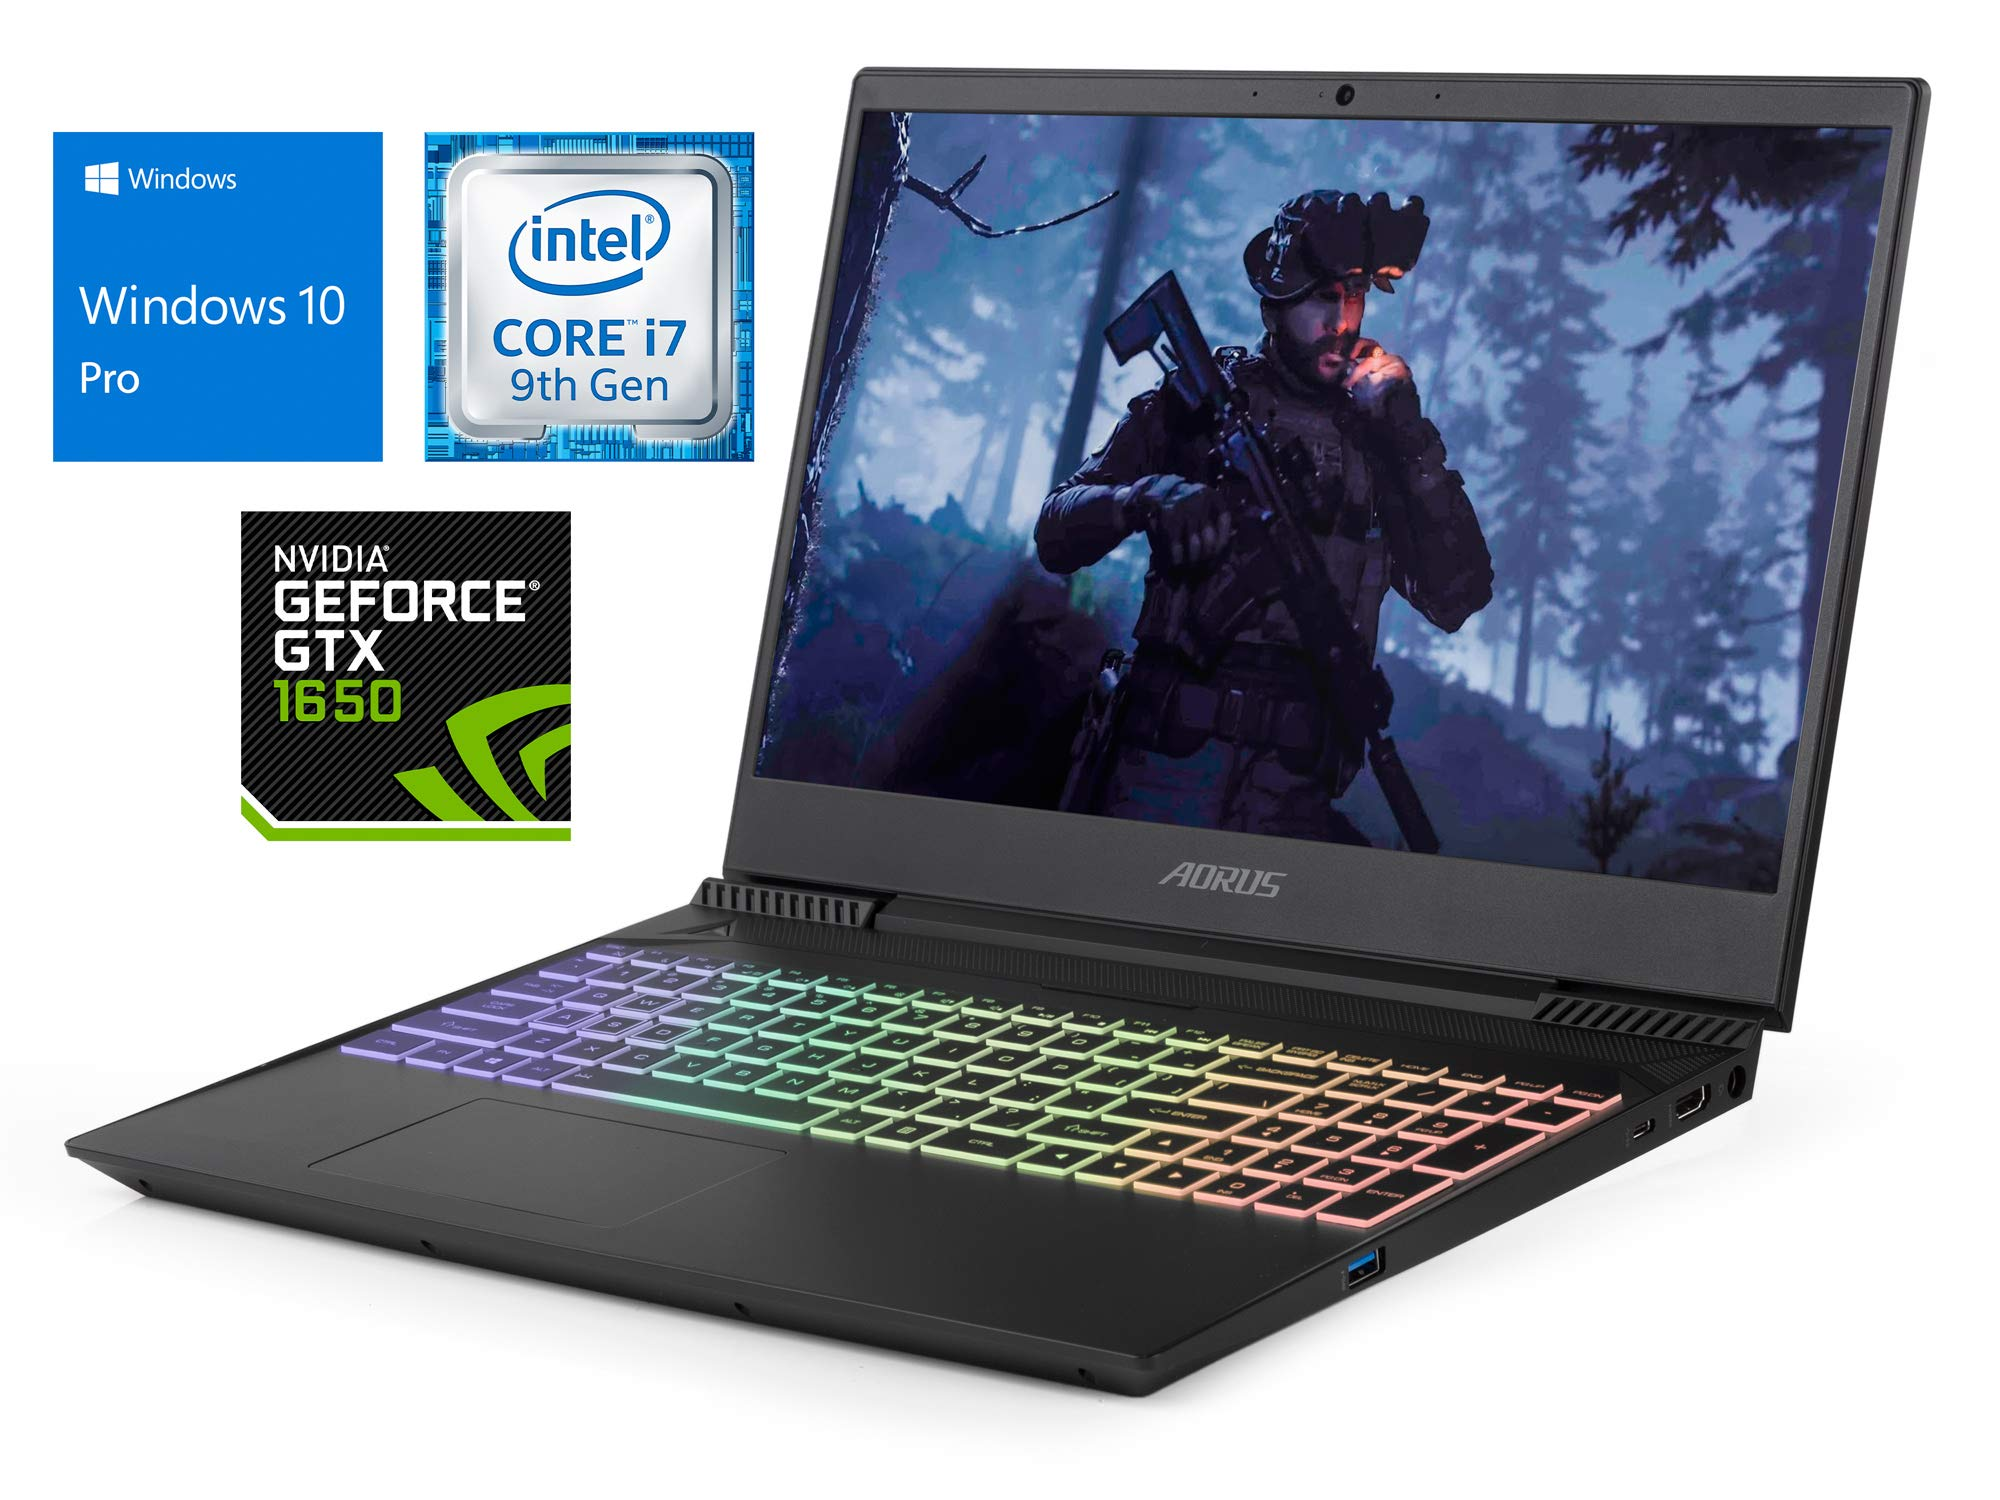 "GIGABYTE Aorus 5 Laptop, 15.6"" FHD Display, Intel Core i7-9750H Upto 4.5GHz, 64GB RAM, 2TB NVMe SSD + 1TB HDD, NVIDIA GeForce GTX 1650, HDMI, Card Reader, Wi-Fi, Bluetooth, Windows 10 Pro"